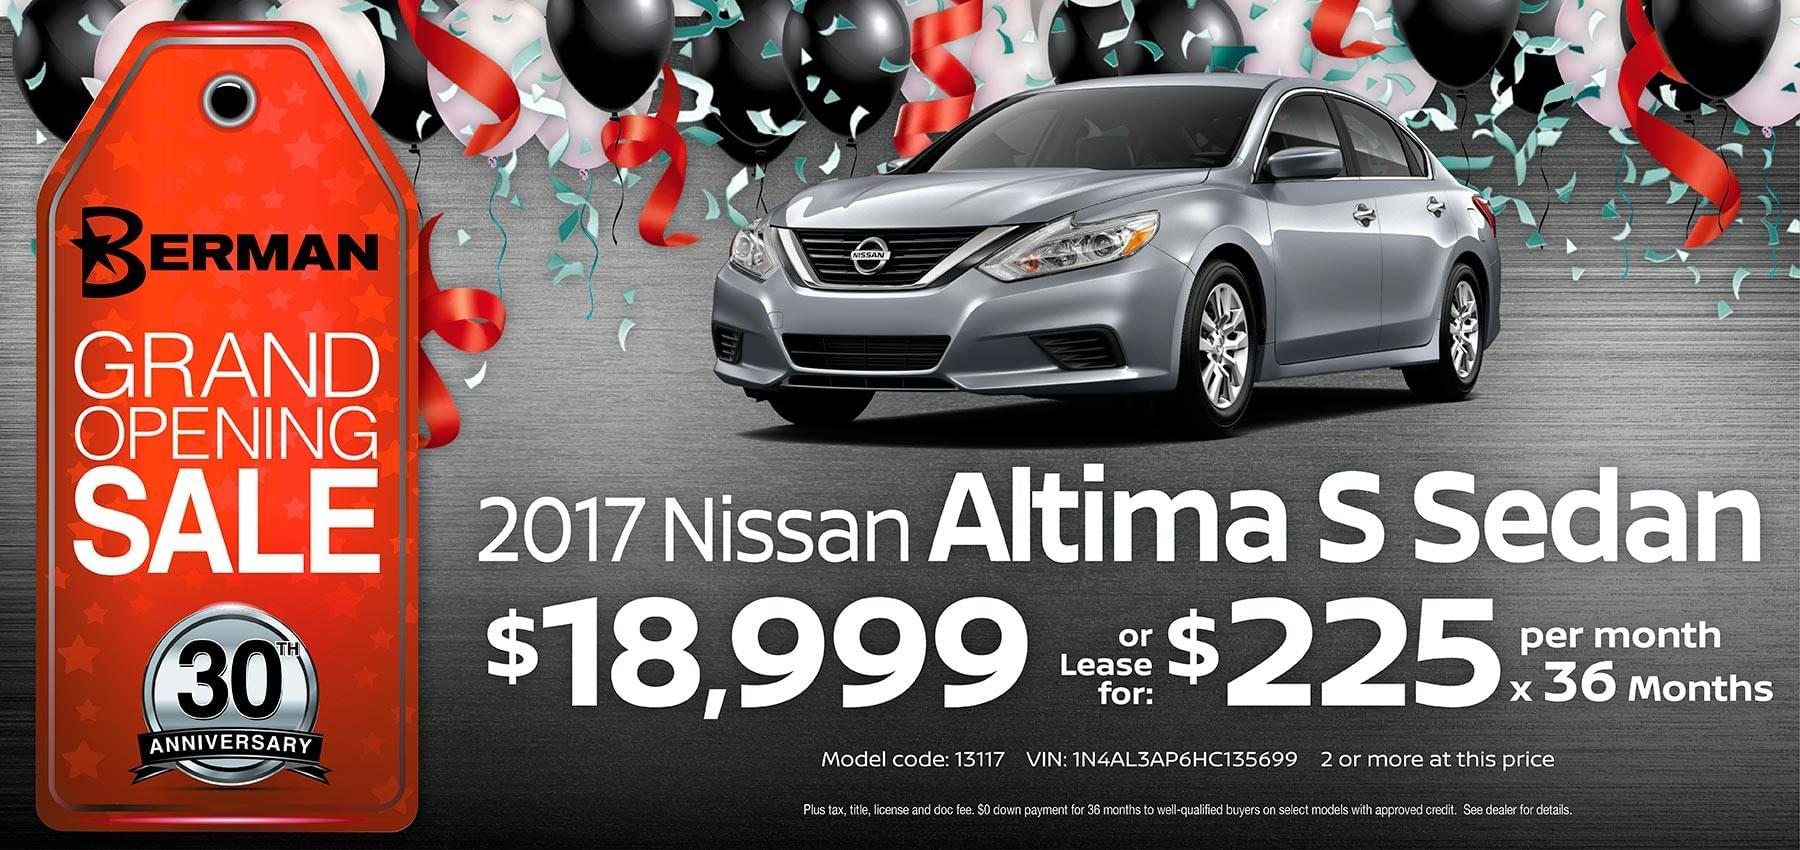 2017 Nissan Altima Berman Nissan of Chicago February Grand Opening Sale